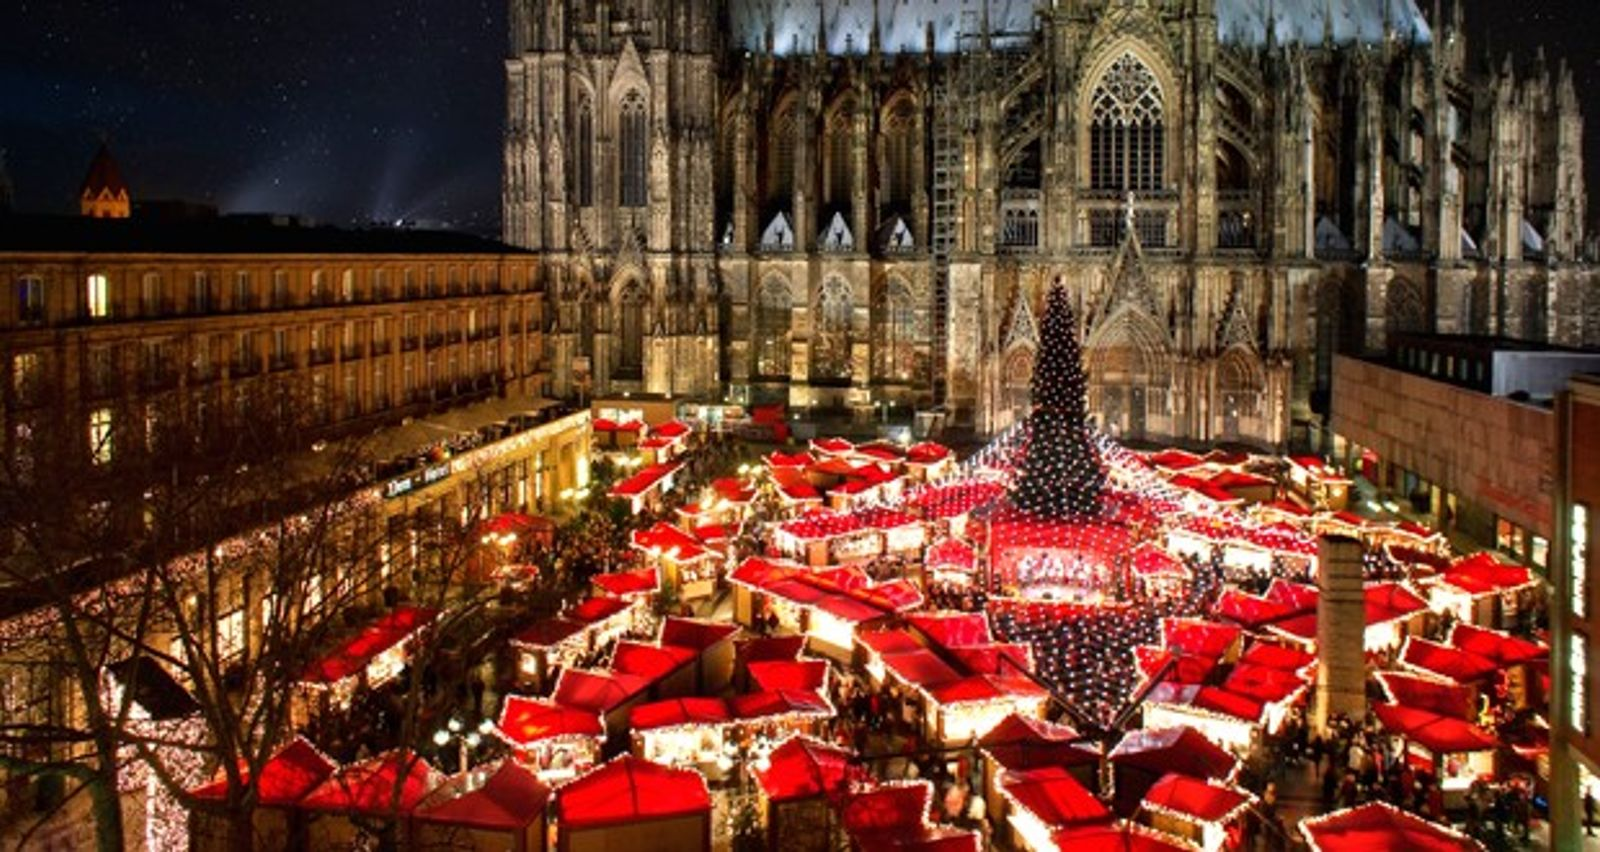 Four of the best European Christmas markets for foodies